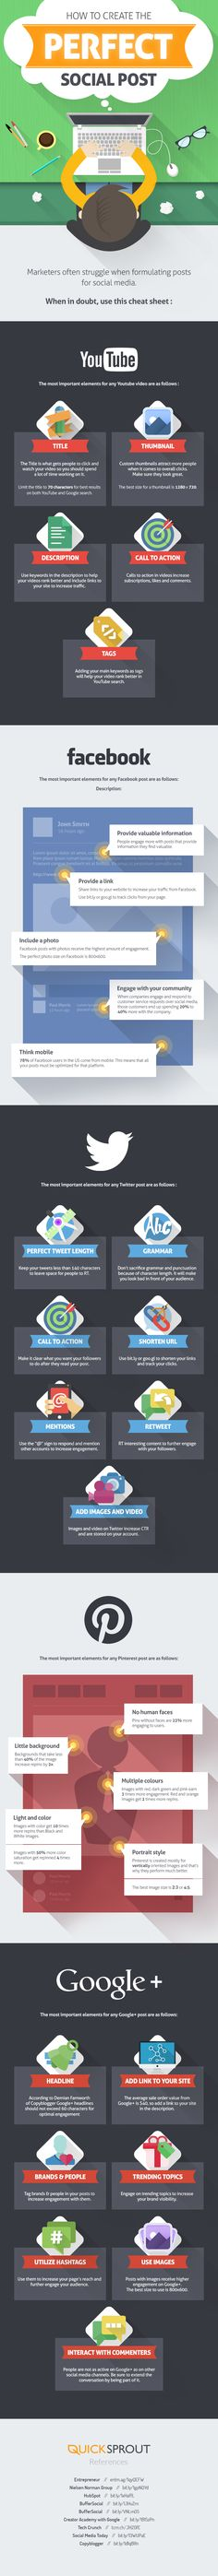 How to Create the Perfect Post for #SocialMedia Channels #infographic #cheatsheet